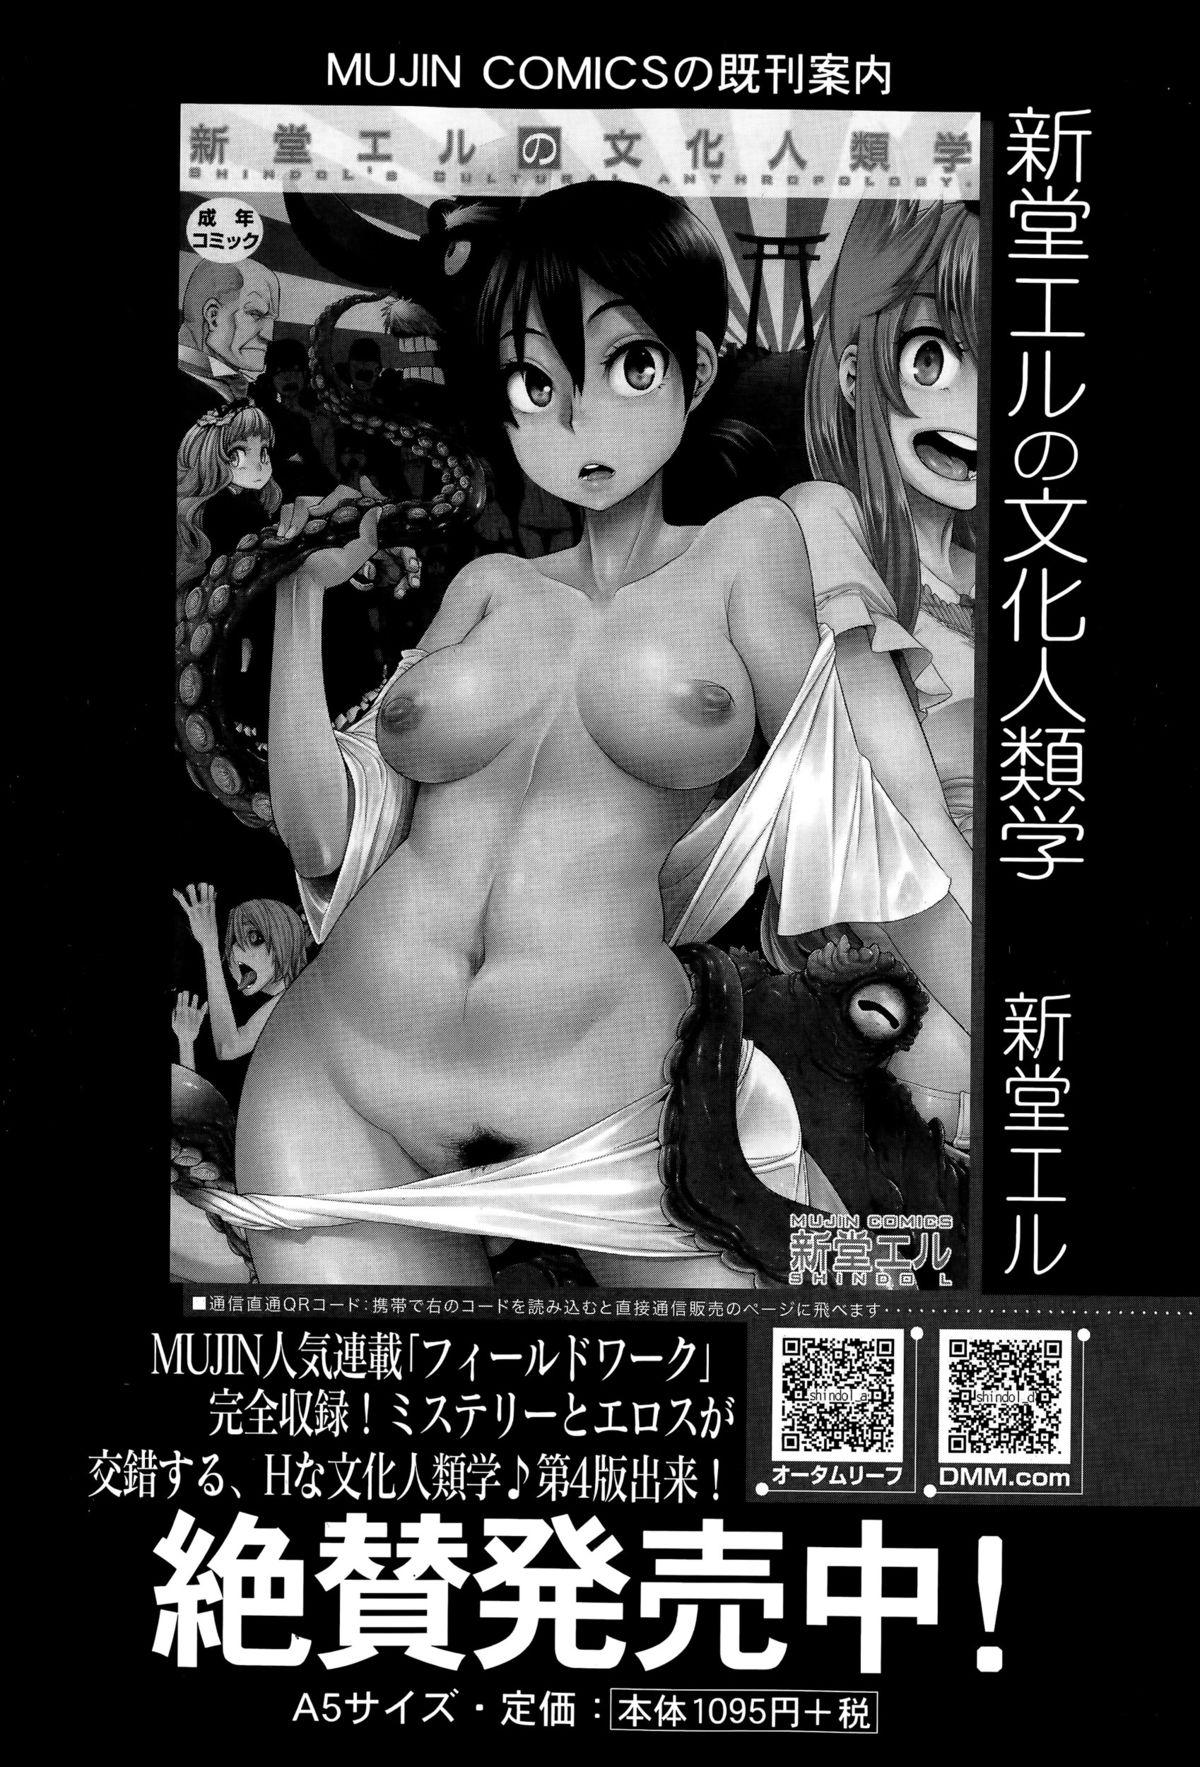 BUSTER COMIC 2015-07 367